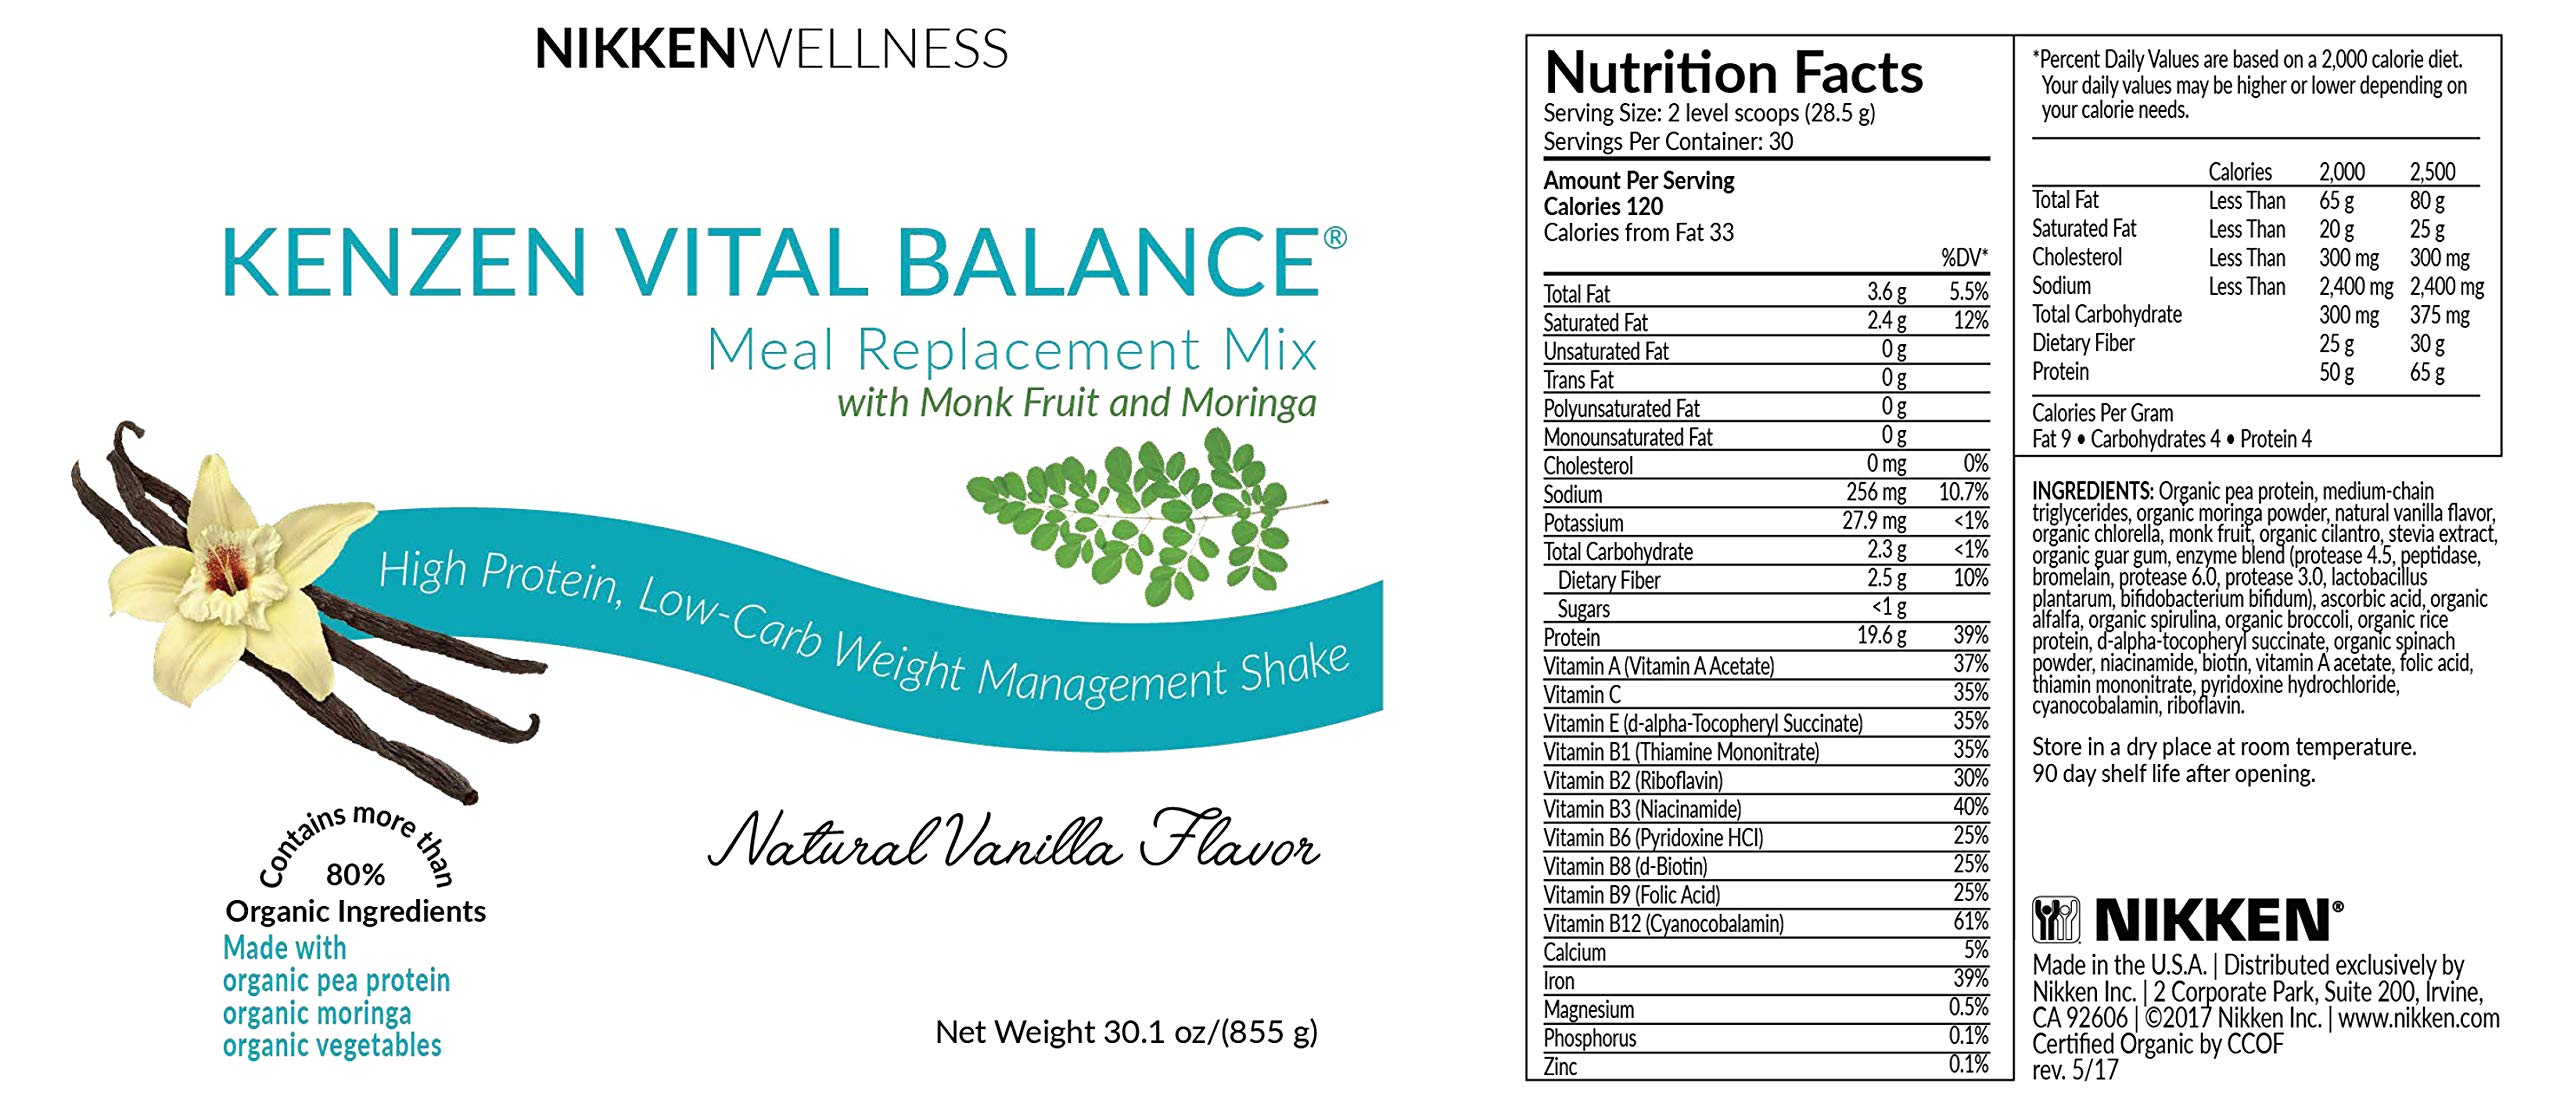 Nikken Kenzen Vital Balance® Meal Replacement Mix 30 oz - Vanilla Flavor by Nikken (Image #2)